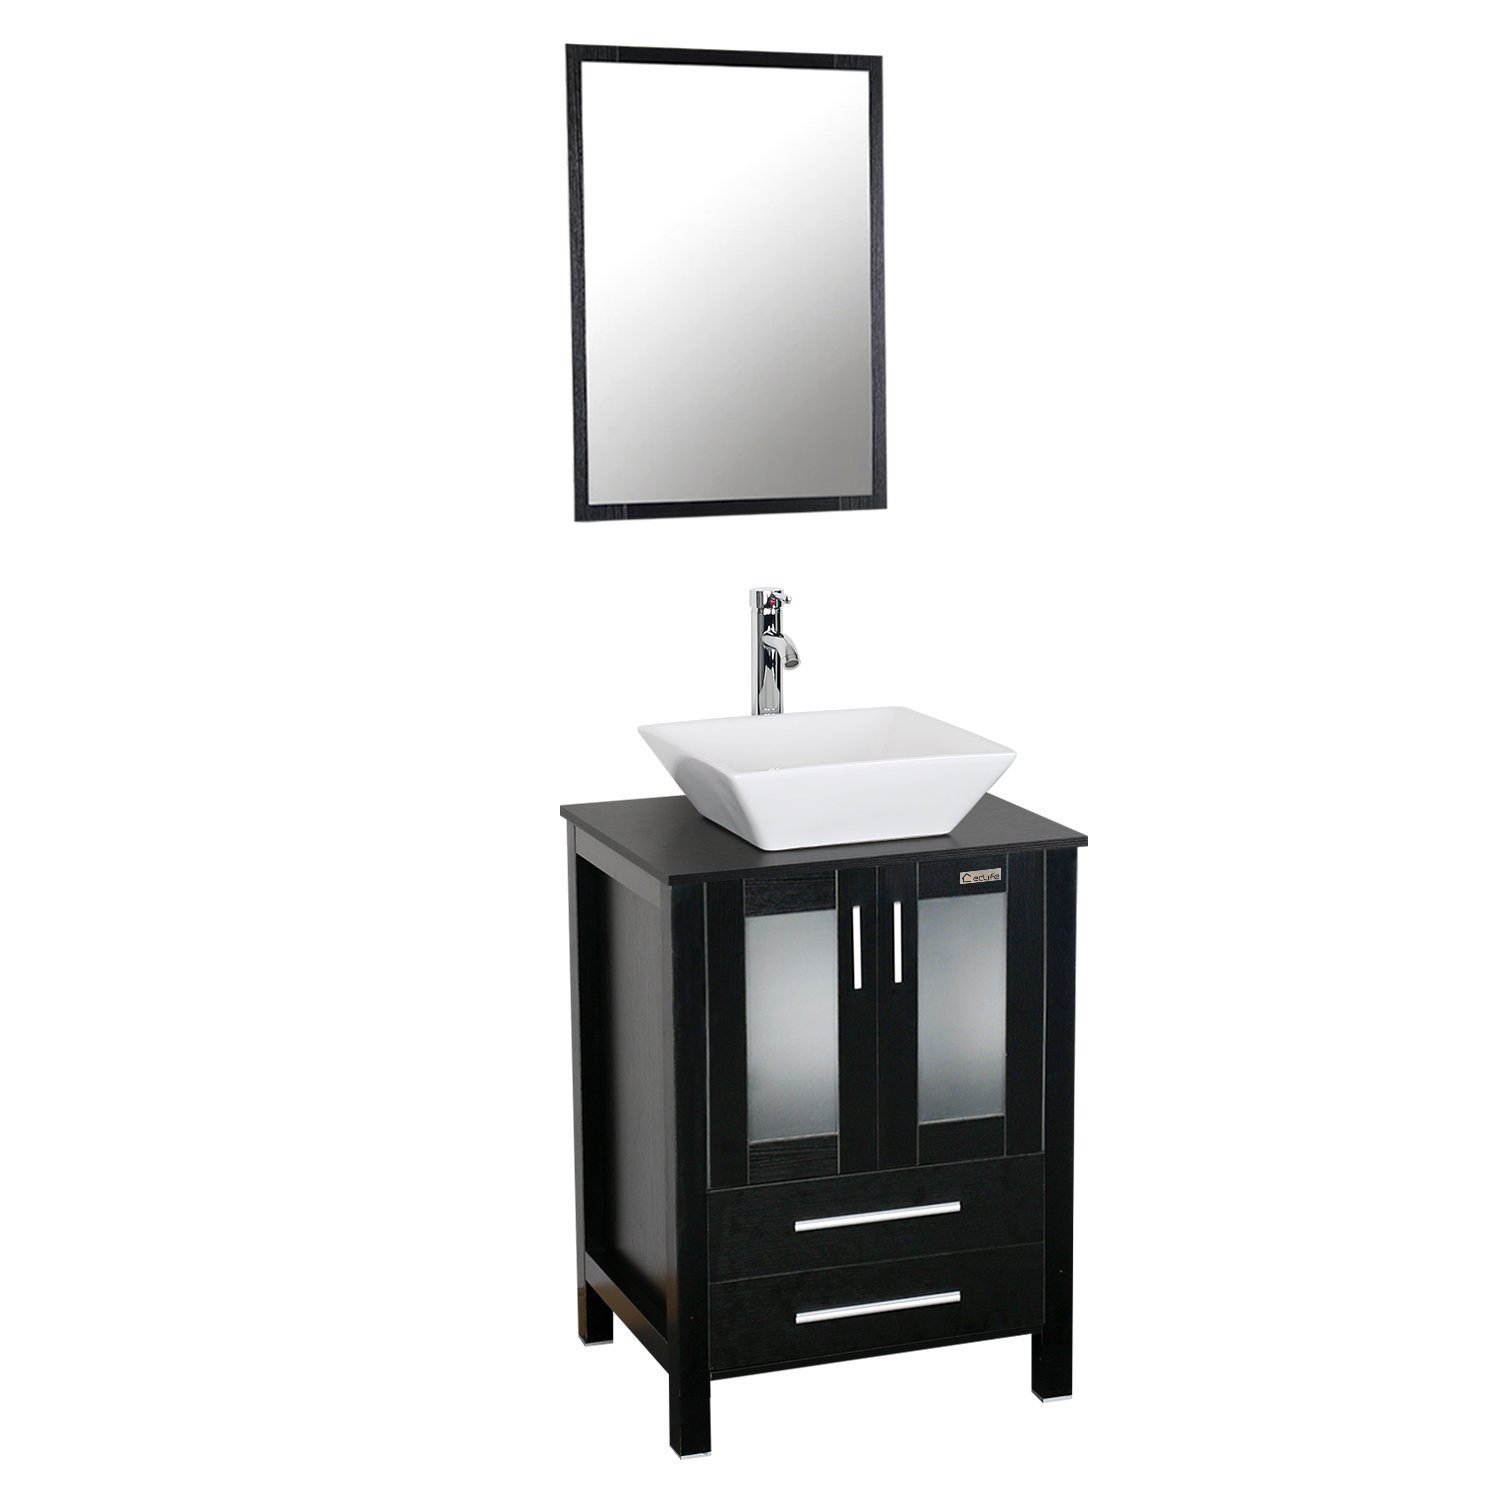 Eclife 24 modern bathroom vanity sink combo units cabinet and sink stand pedestal with white square ceramic vessel sink with chrome bathroom solid brass